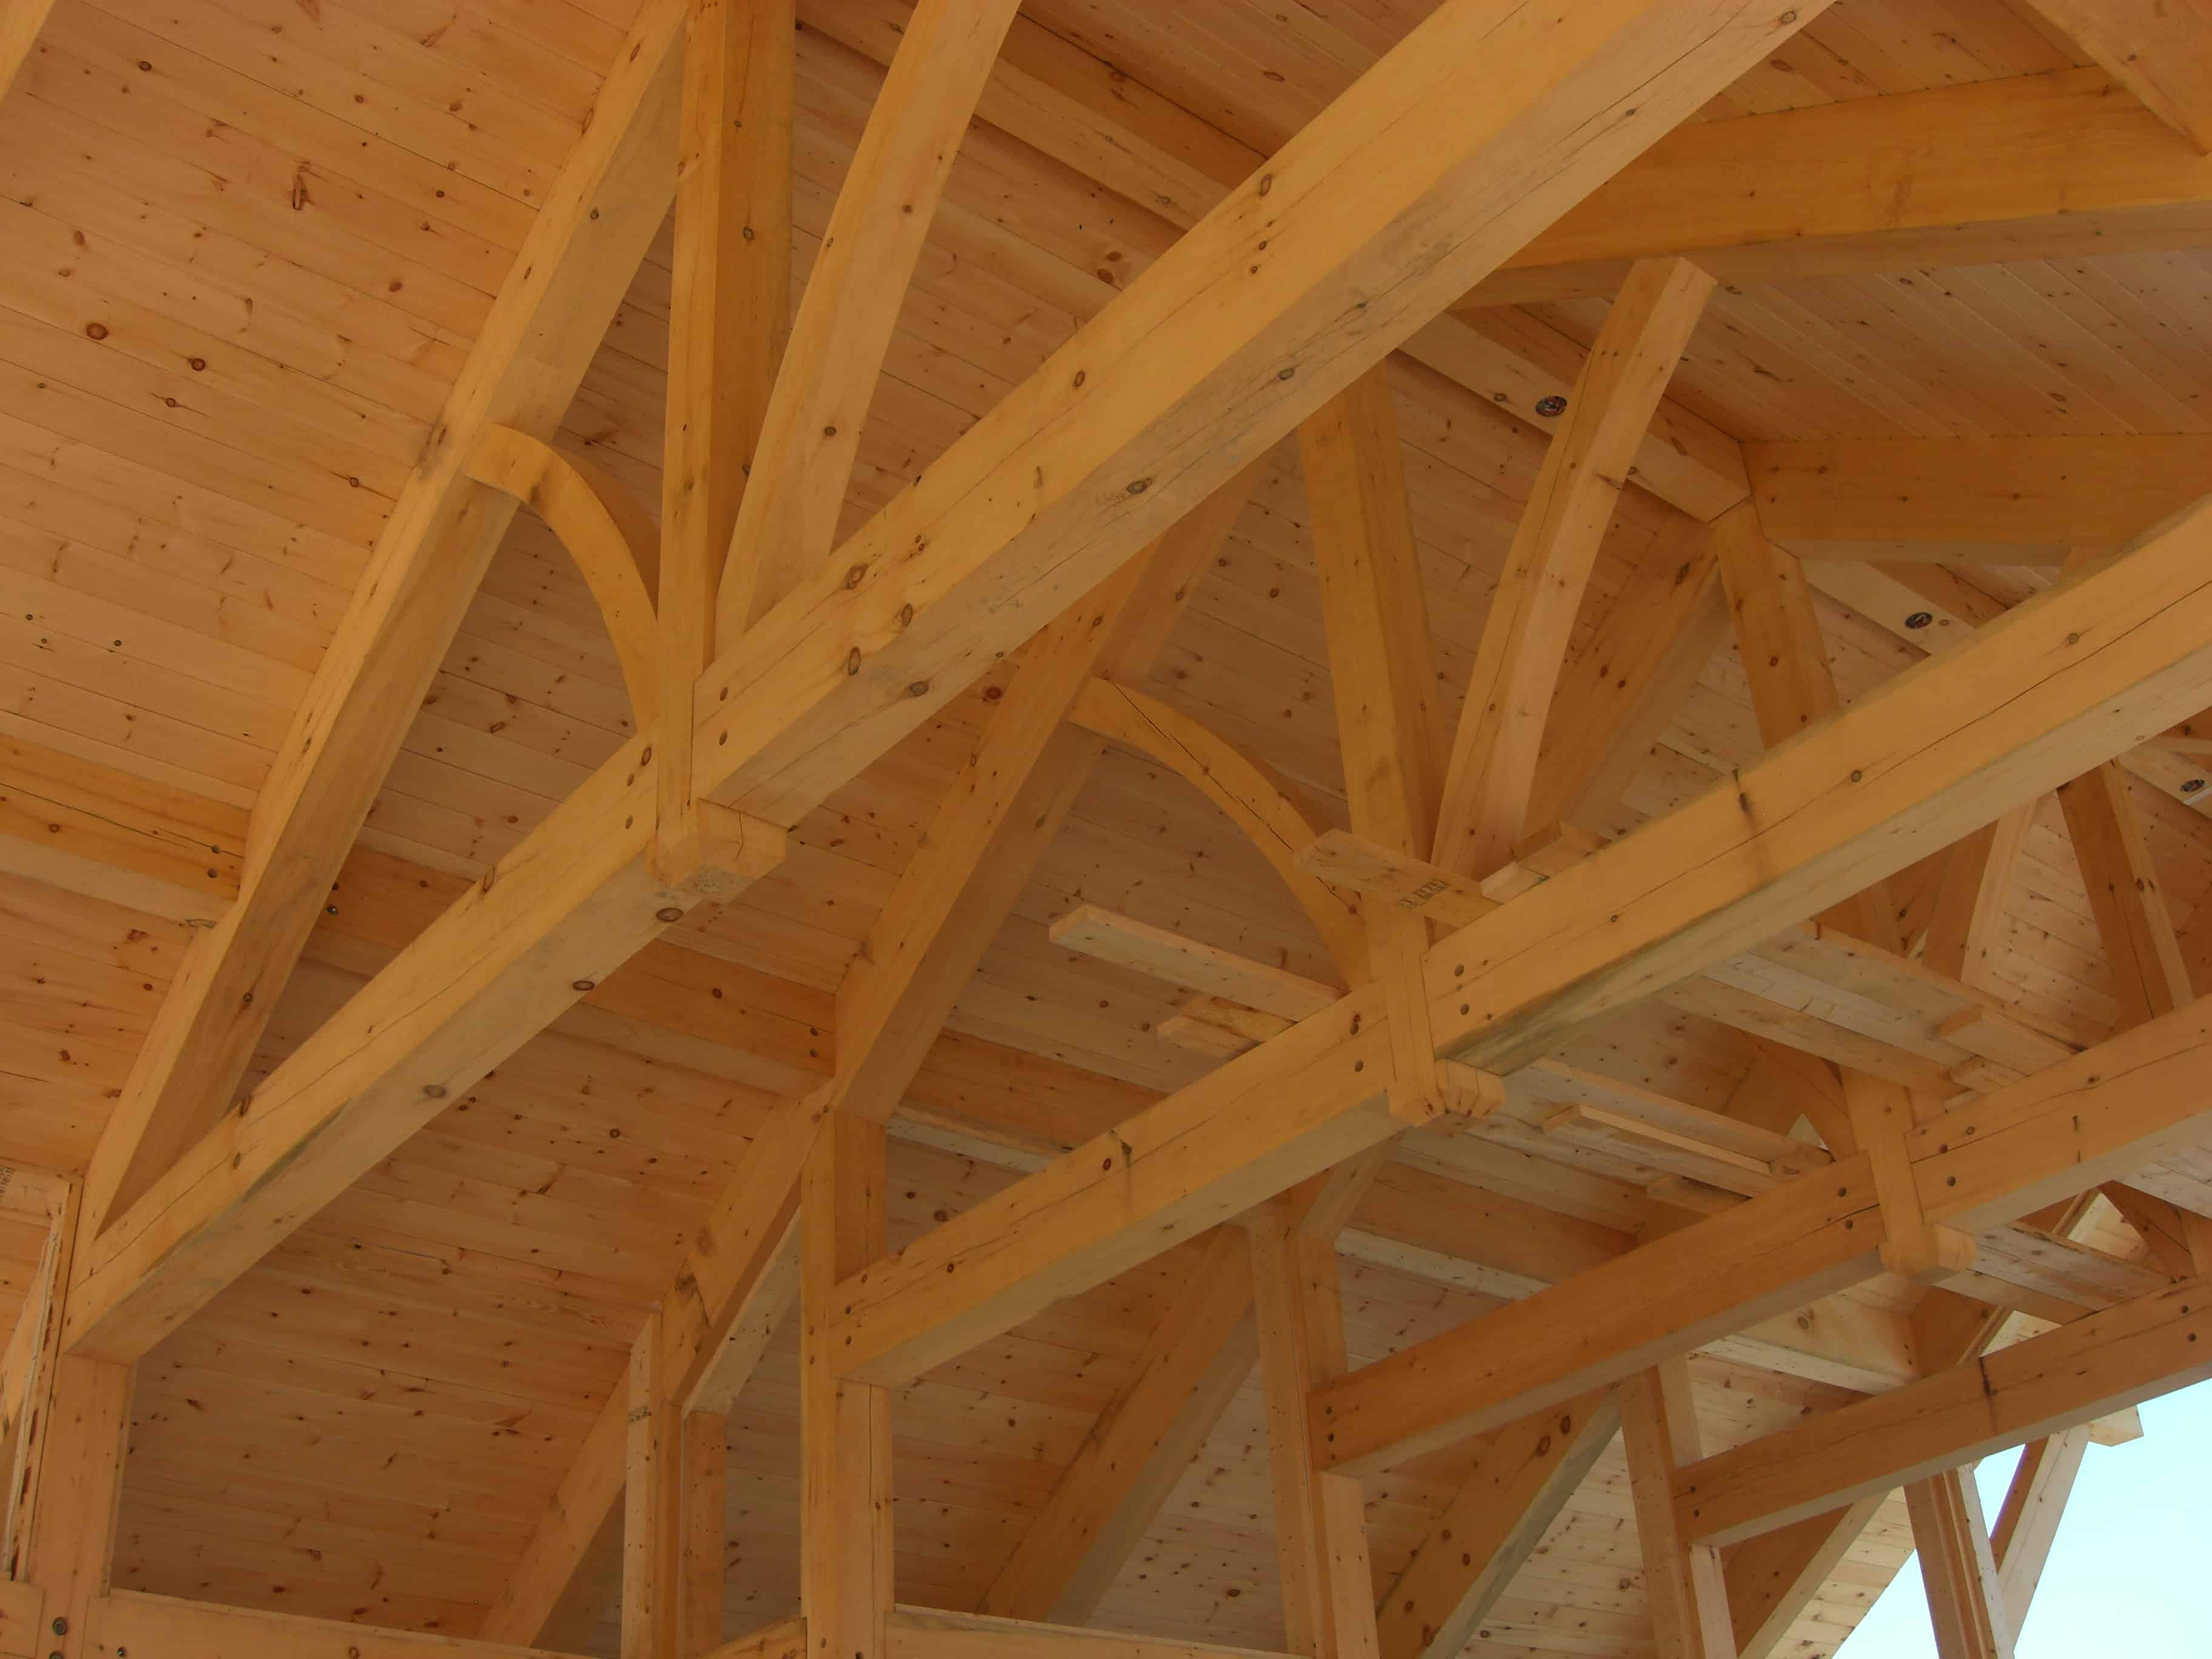 Full view timberframe truss under roof